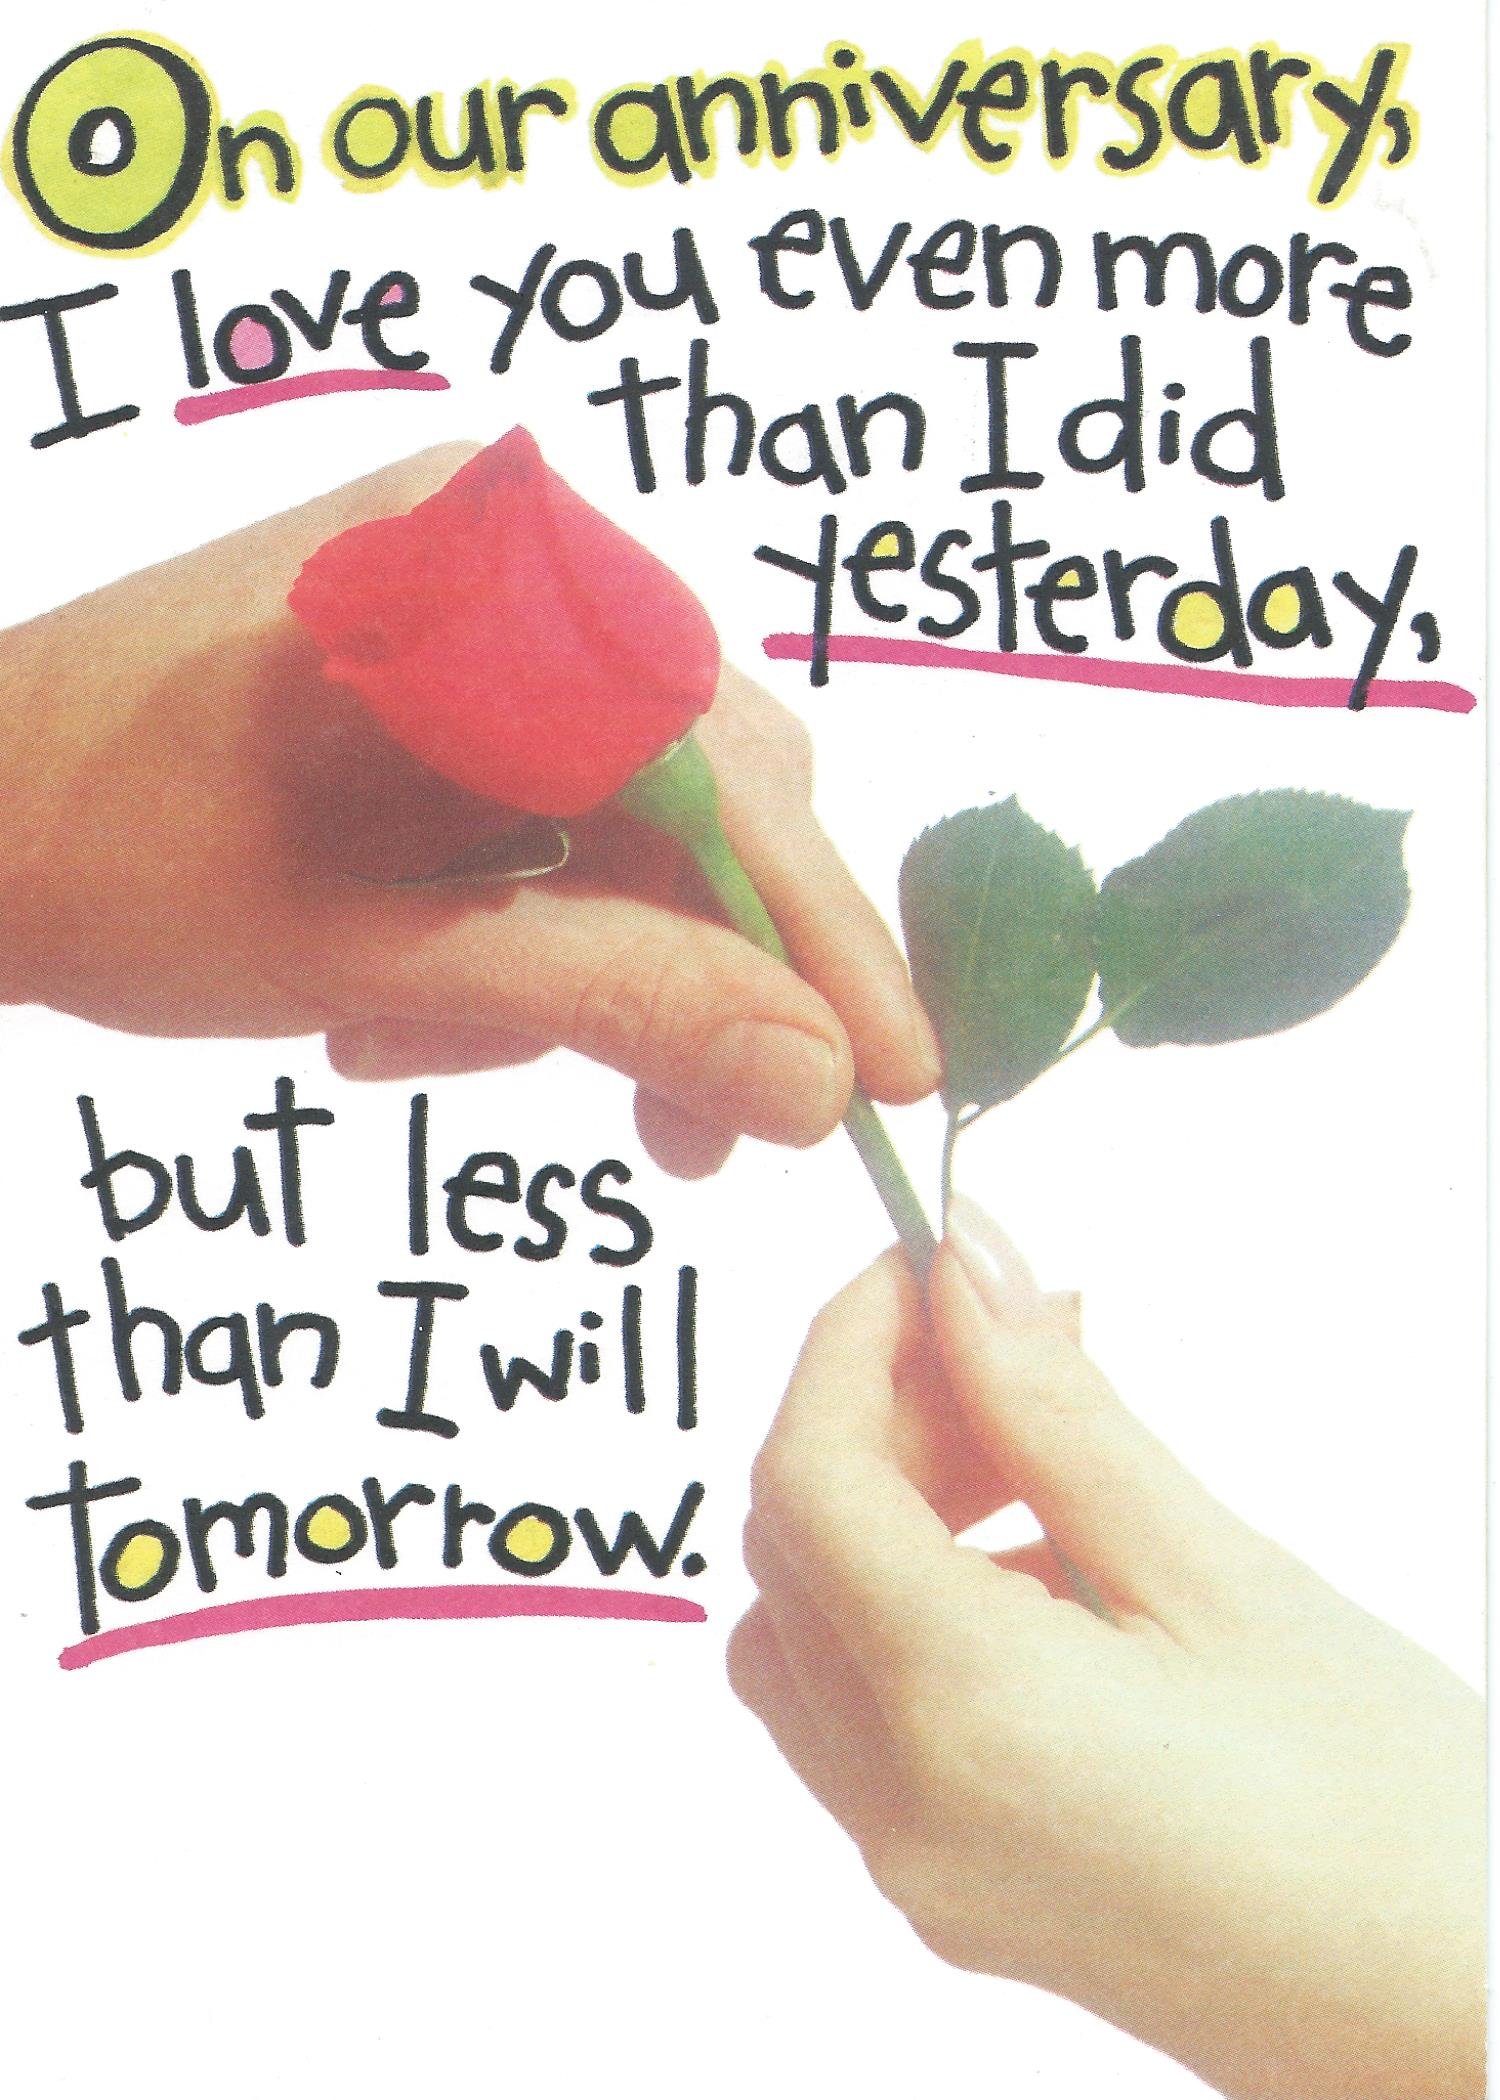 On our anniversary, I love you even more than I did yesterday, but less than I will tomorrow.